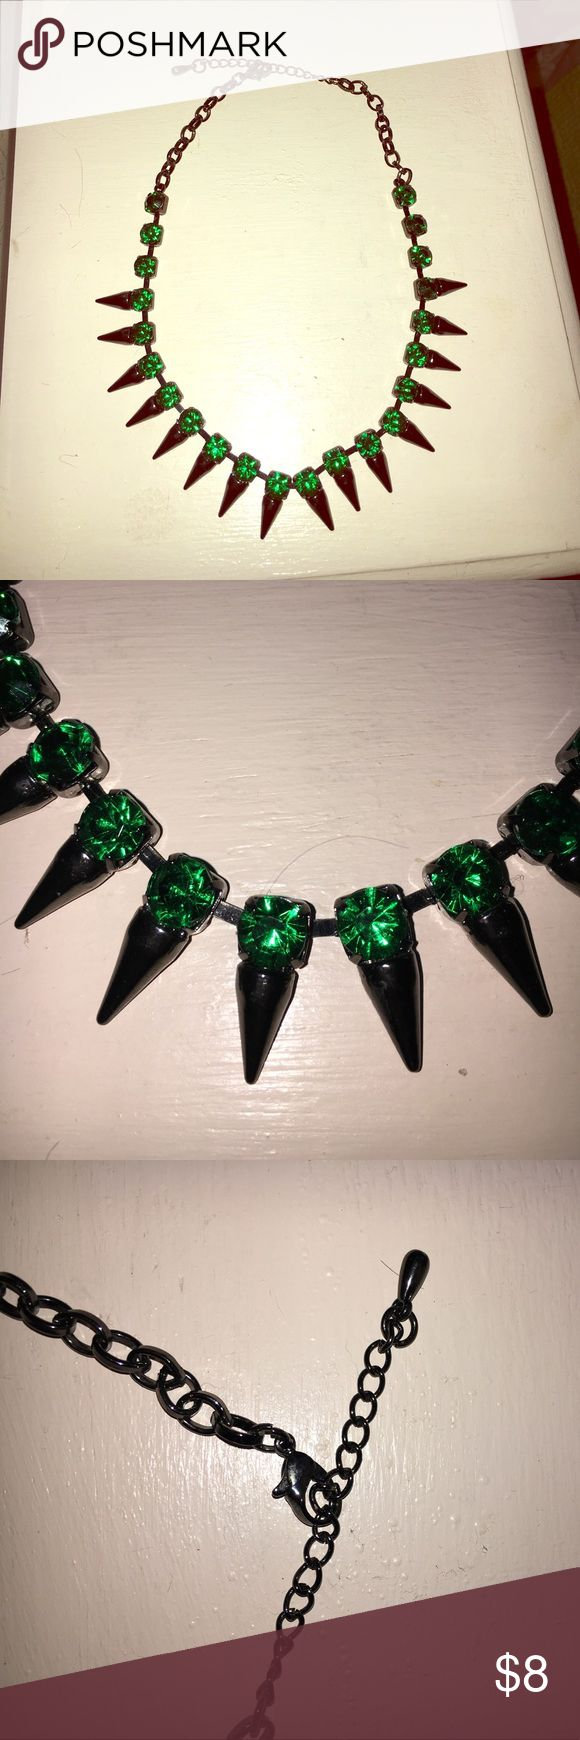 Emerald green statement necklace Beautiful green and black statement necklace, can be adjusted 13-18 inches Bar III Jewelry Necklaces